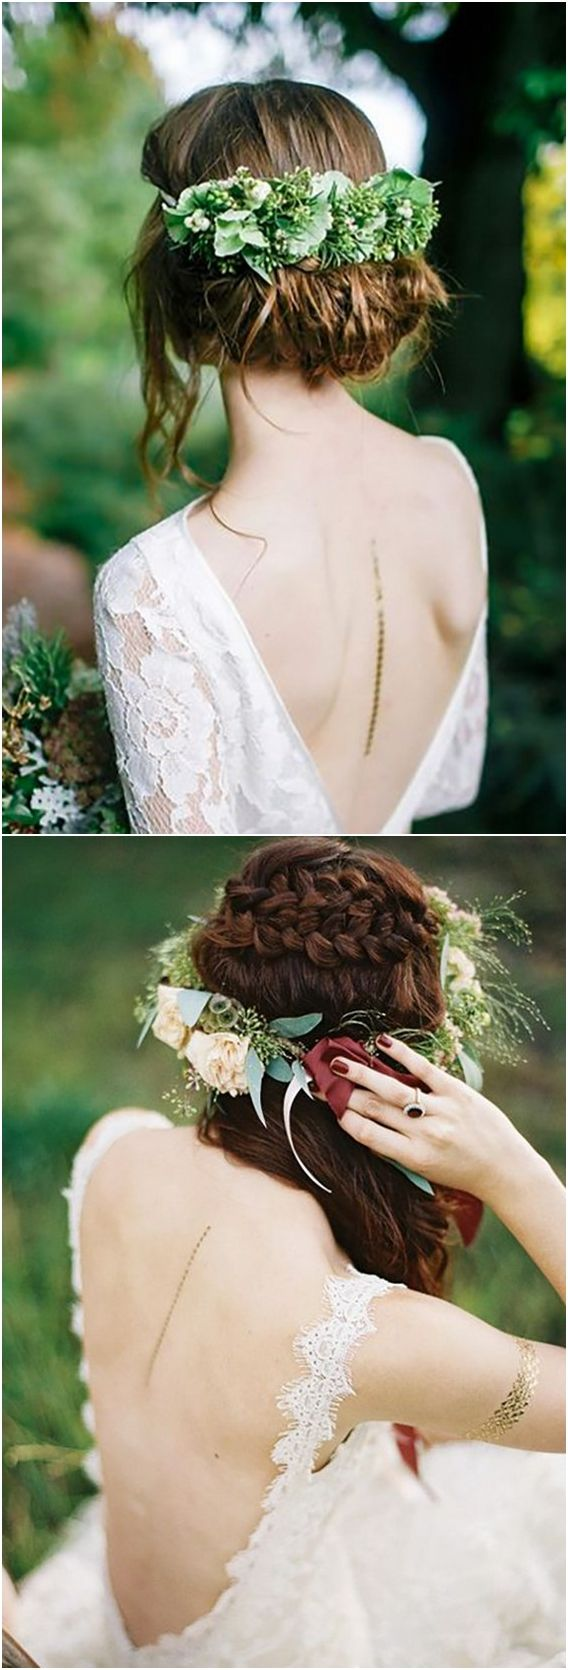 Long wedding hairstyles with greenery #wedding #weddingideas #hairstyles http://www.deerpearlflowers.com/wedding-hairstyles-with-flower-crowns/